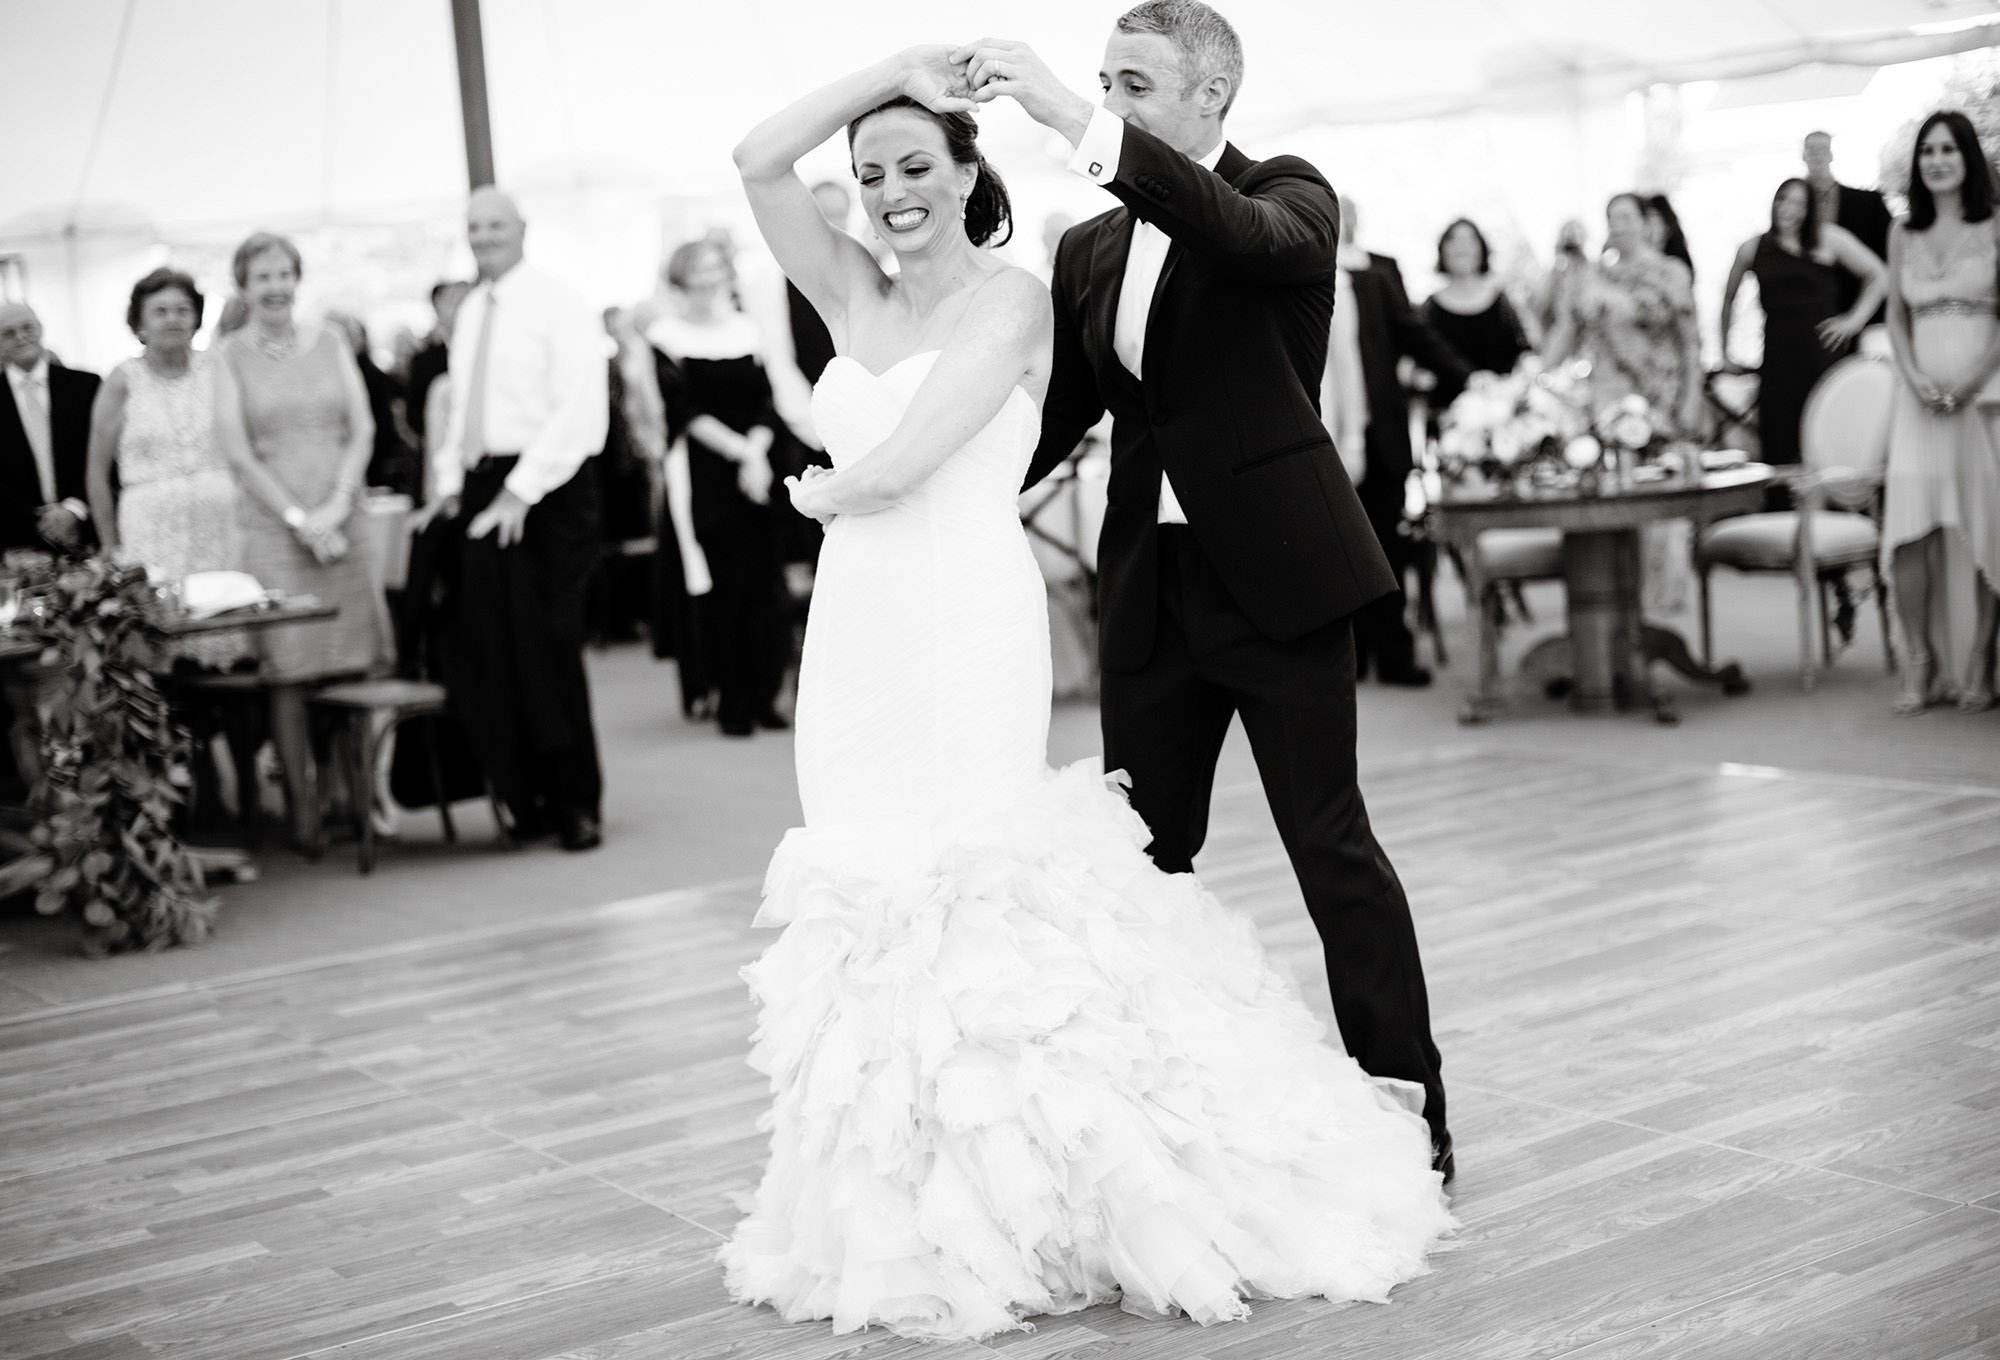 The Bride and Groom enjoy their First Dance during their wedding reception.